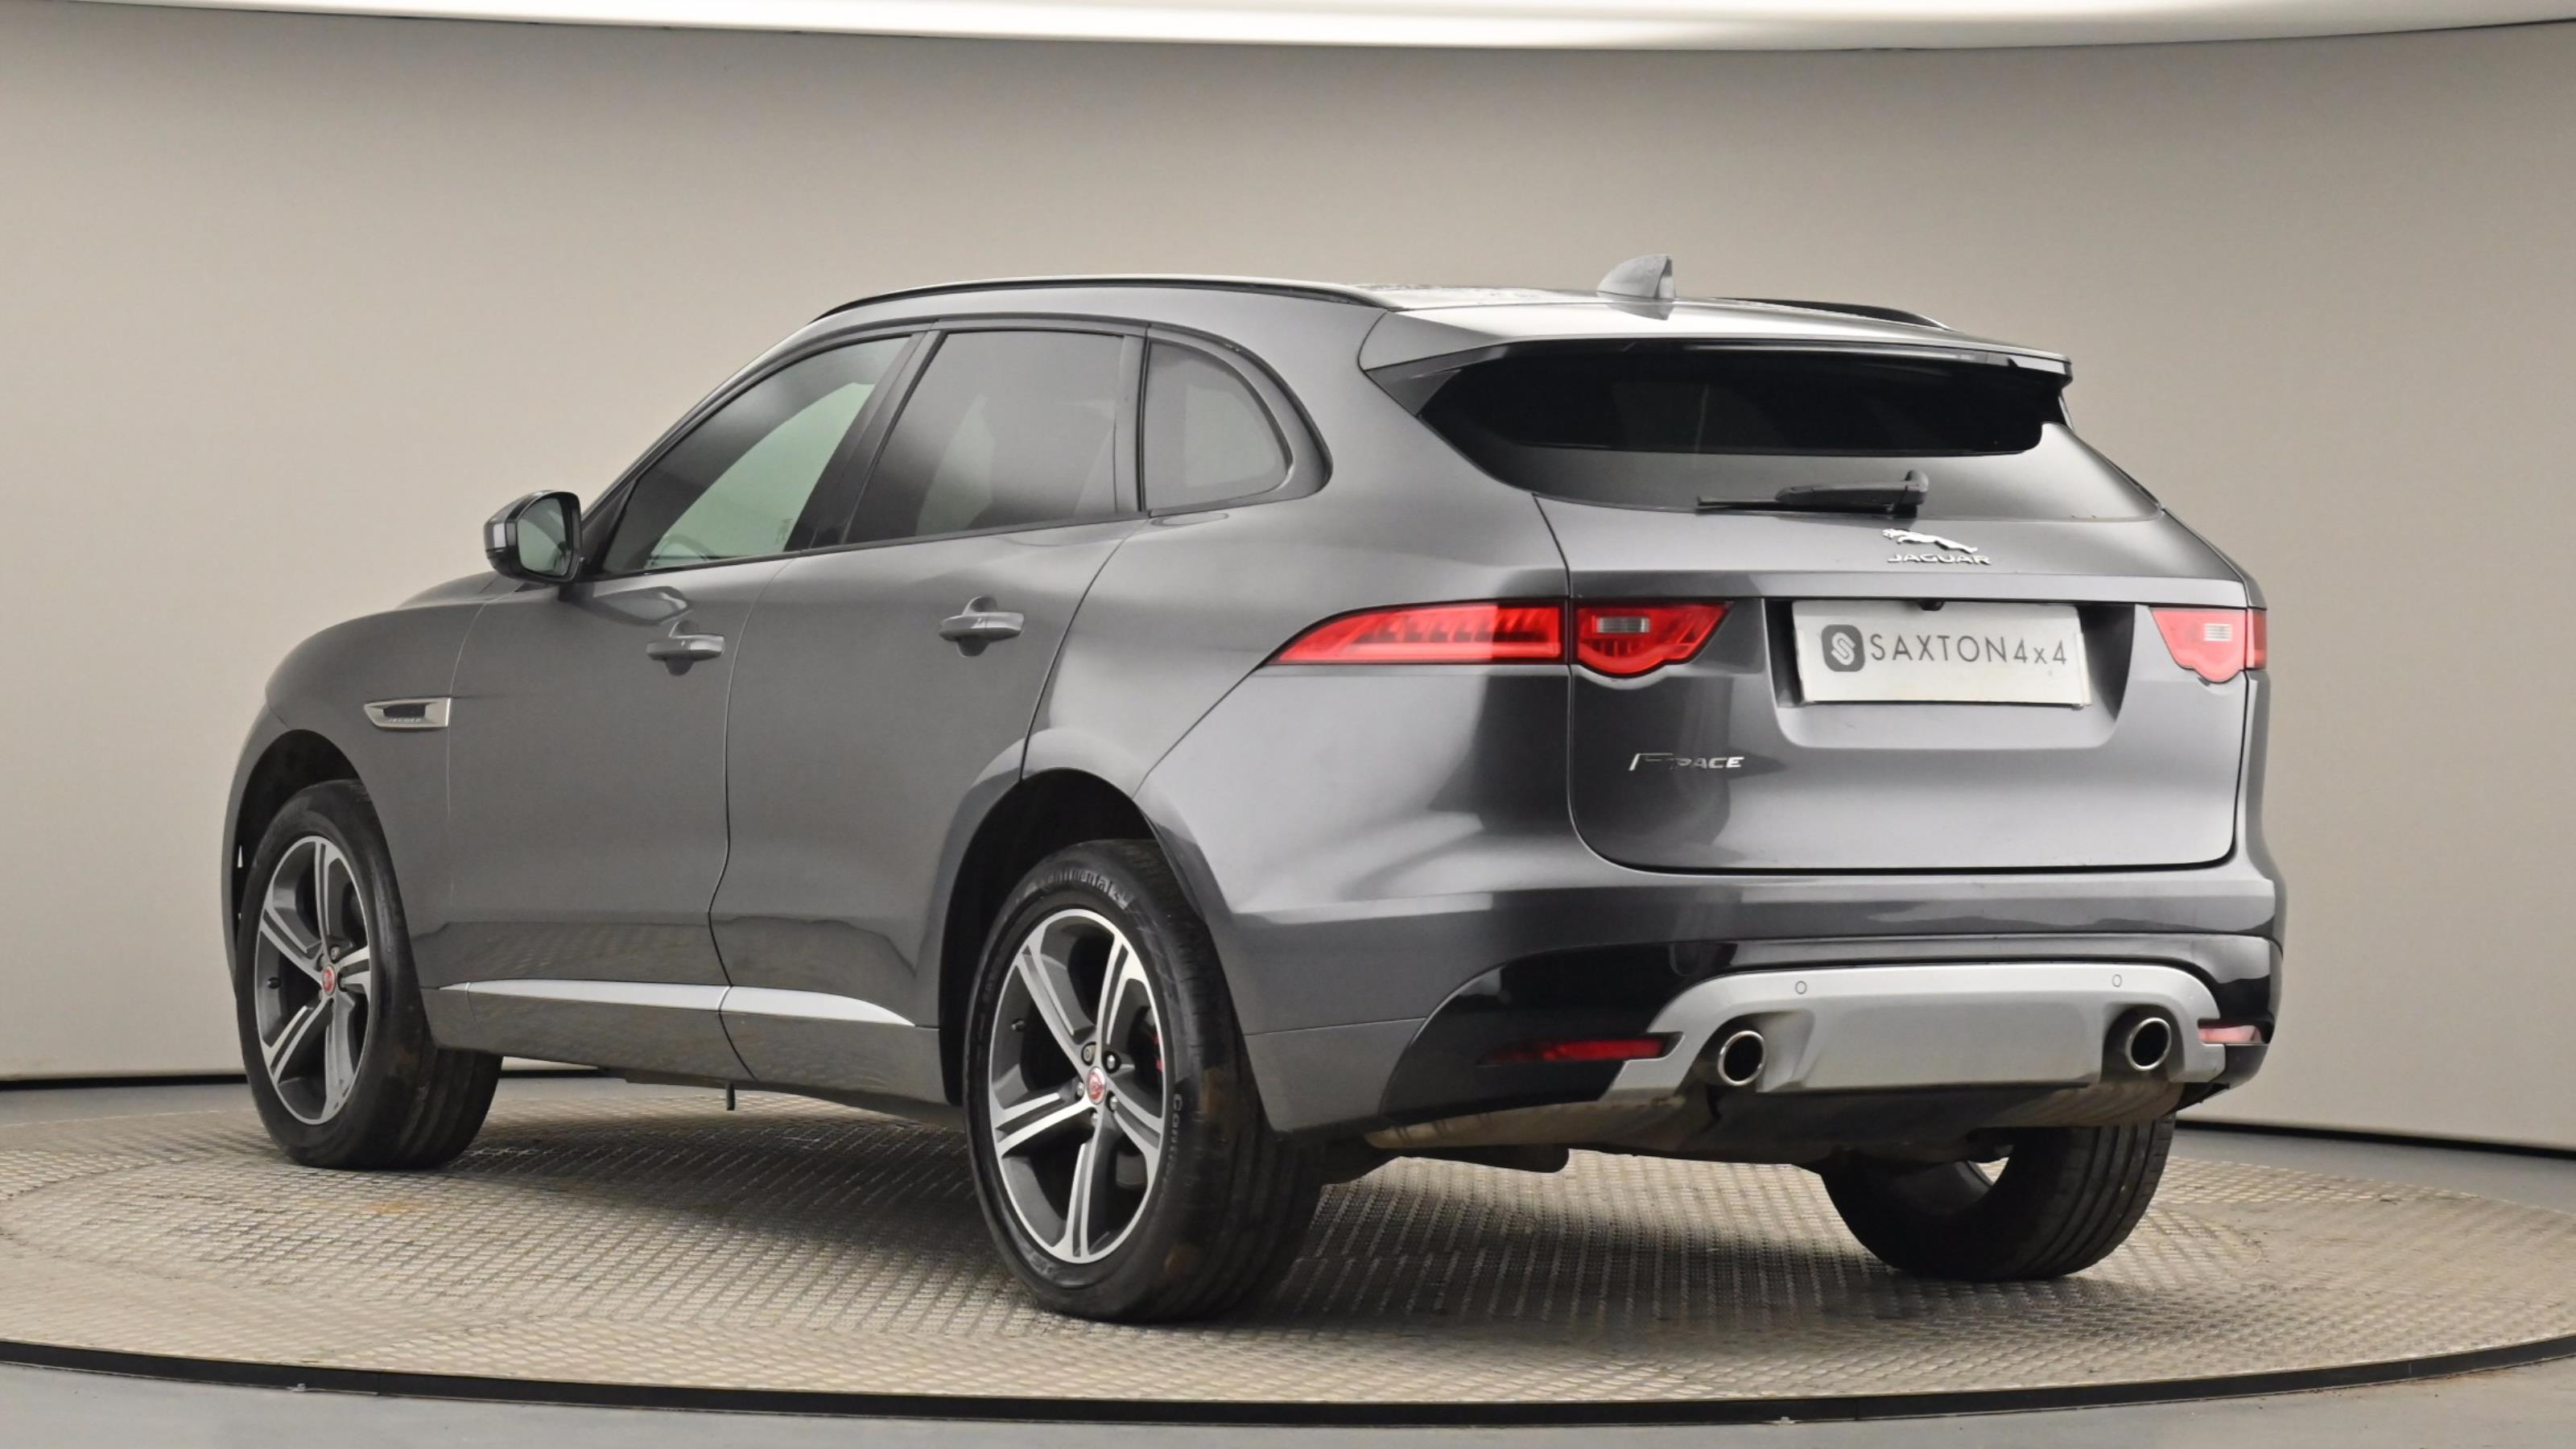 Used 2017 Jaguar F-PACE 3.0d V6 S 5dr Auto AWD GREY at Saxton4x4